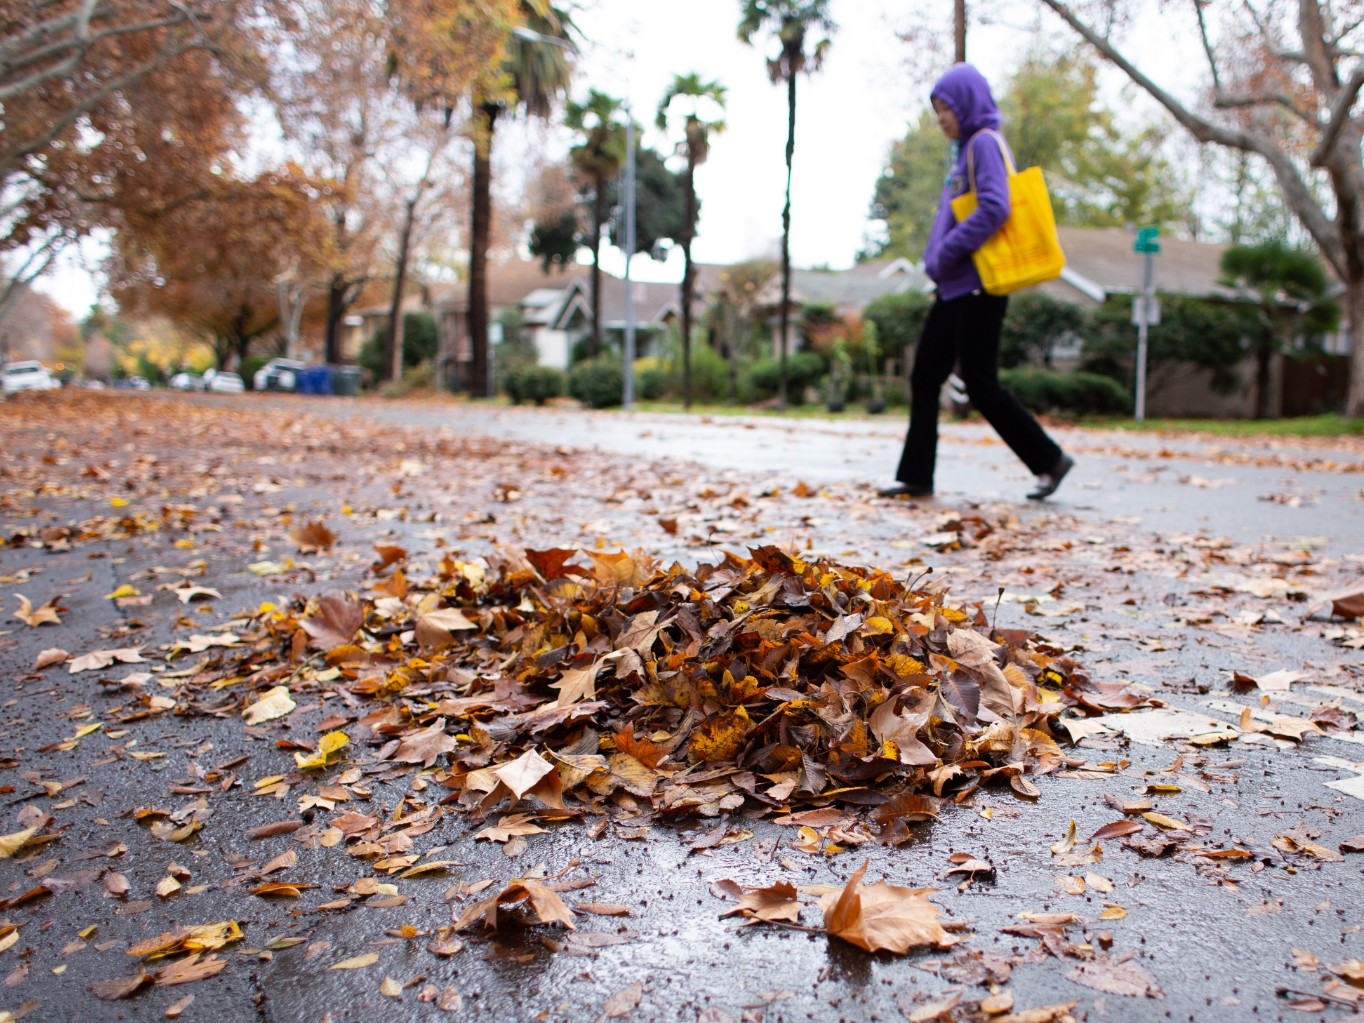 Leaf Blowers Could Be Banned In Sacramento On Bad Air Days